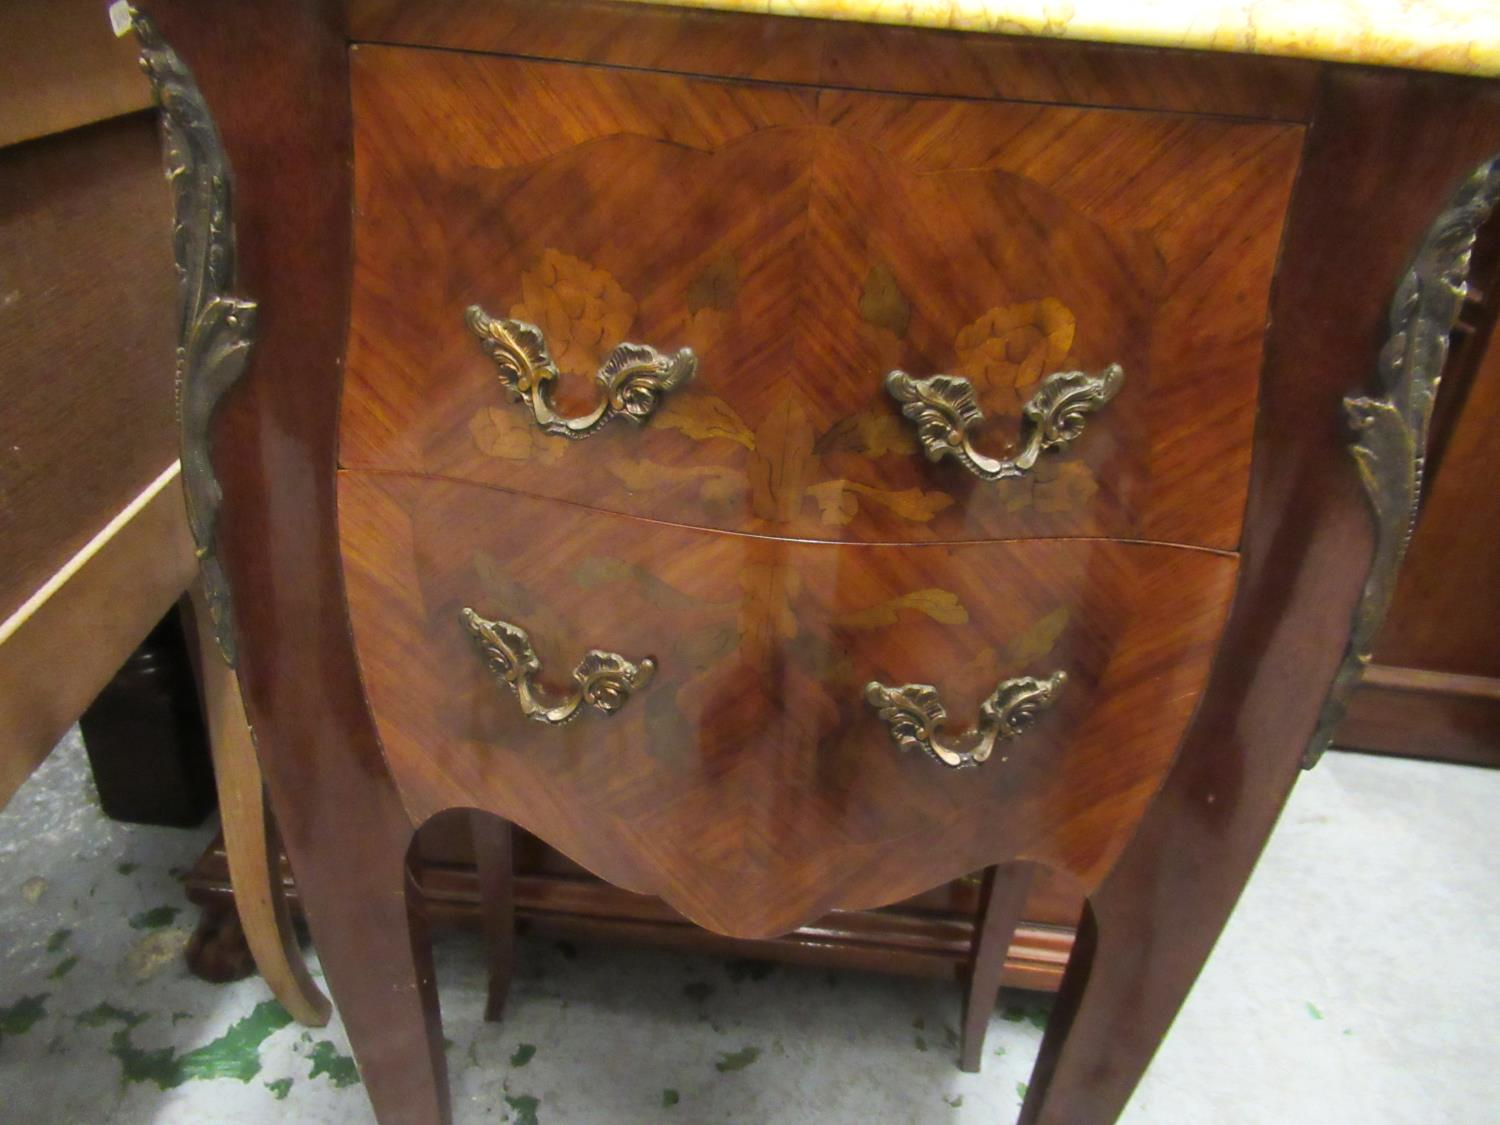 Pair of 20th Century French Kingwood marquetry inlaid and gilt brass mounted serpentine shaped - Image 3 of 7